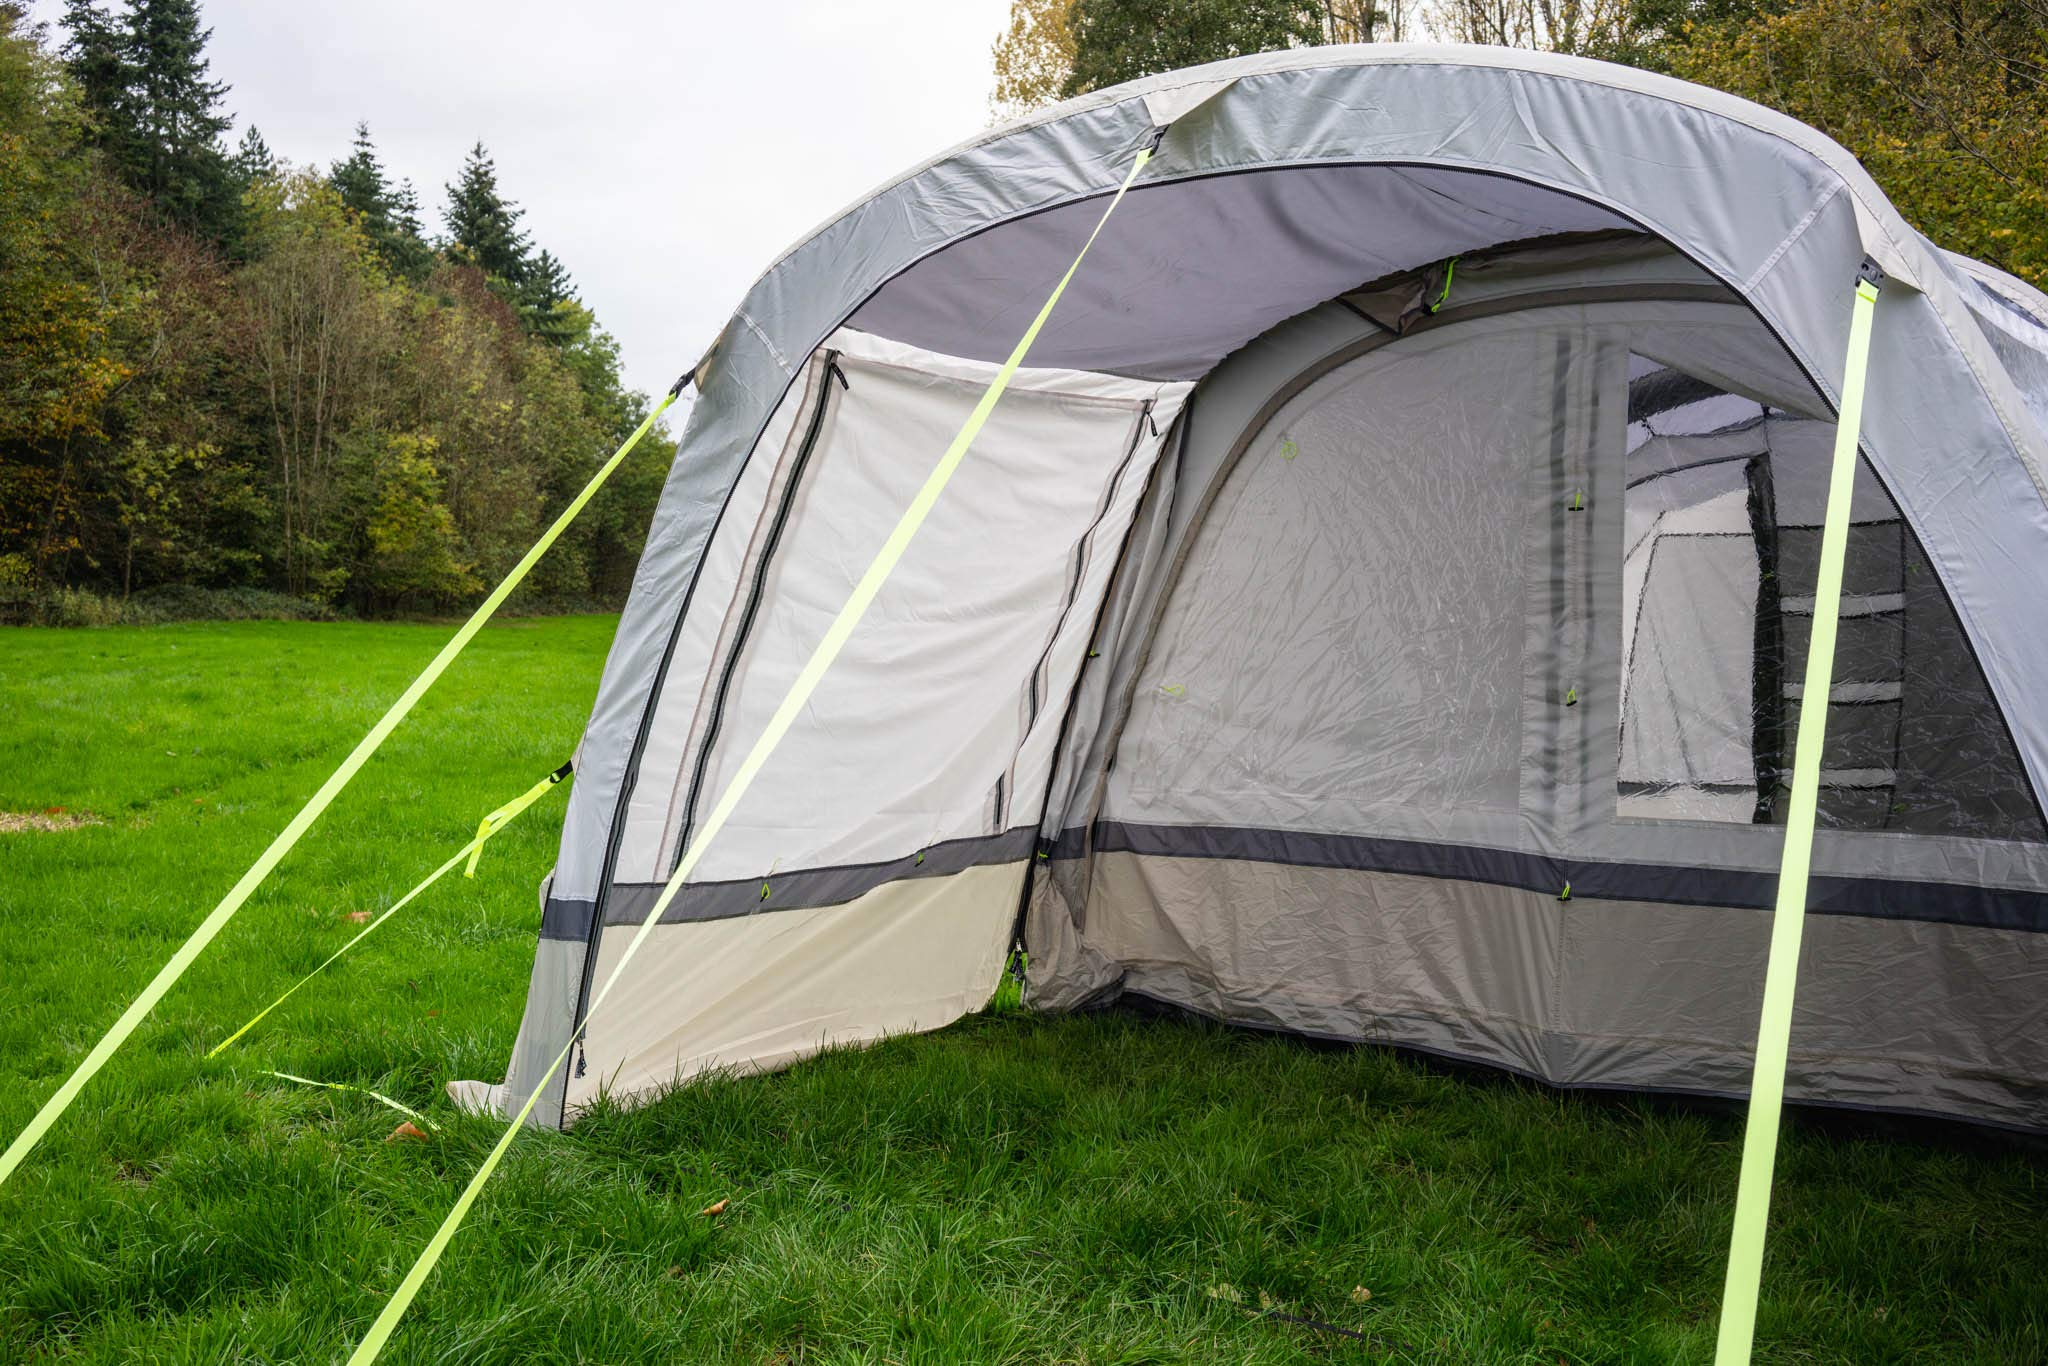 OLPRO Outdoor Leisure Products Cocoon Extension 3.5m x 1.8m Inflatable Drive Away Campervan Awning Porch Extension for Cocoon Breeze Sage Green & Chalk 6